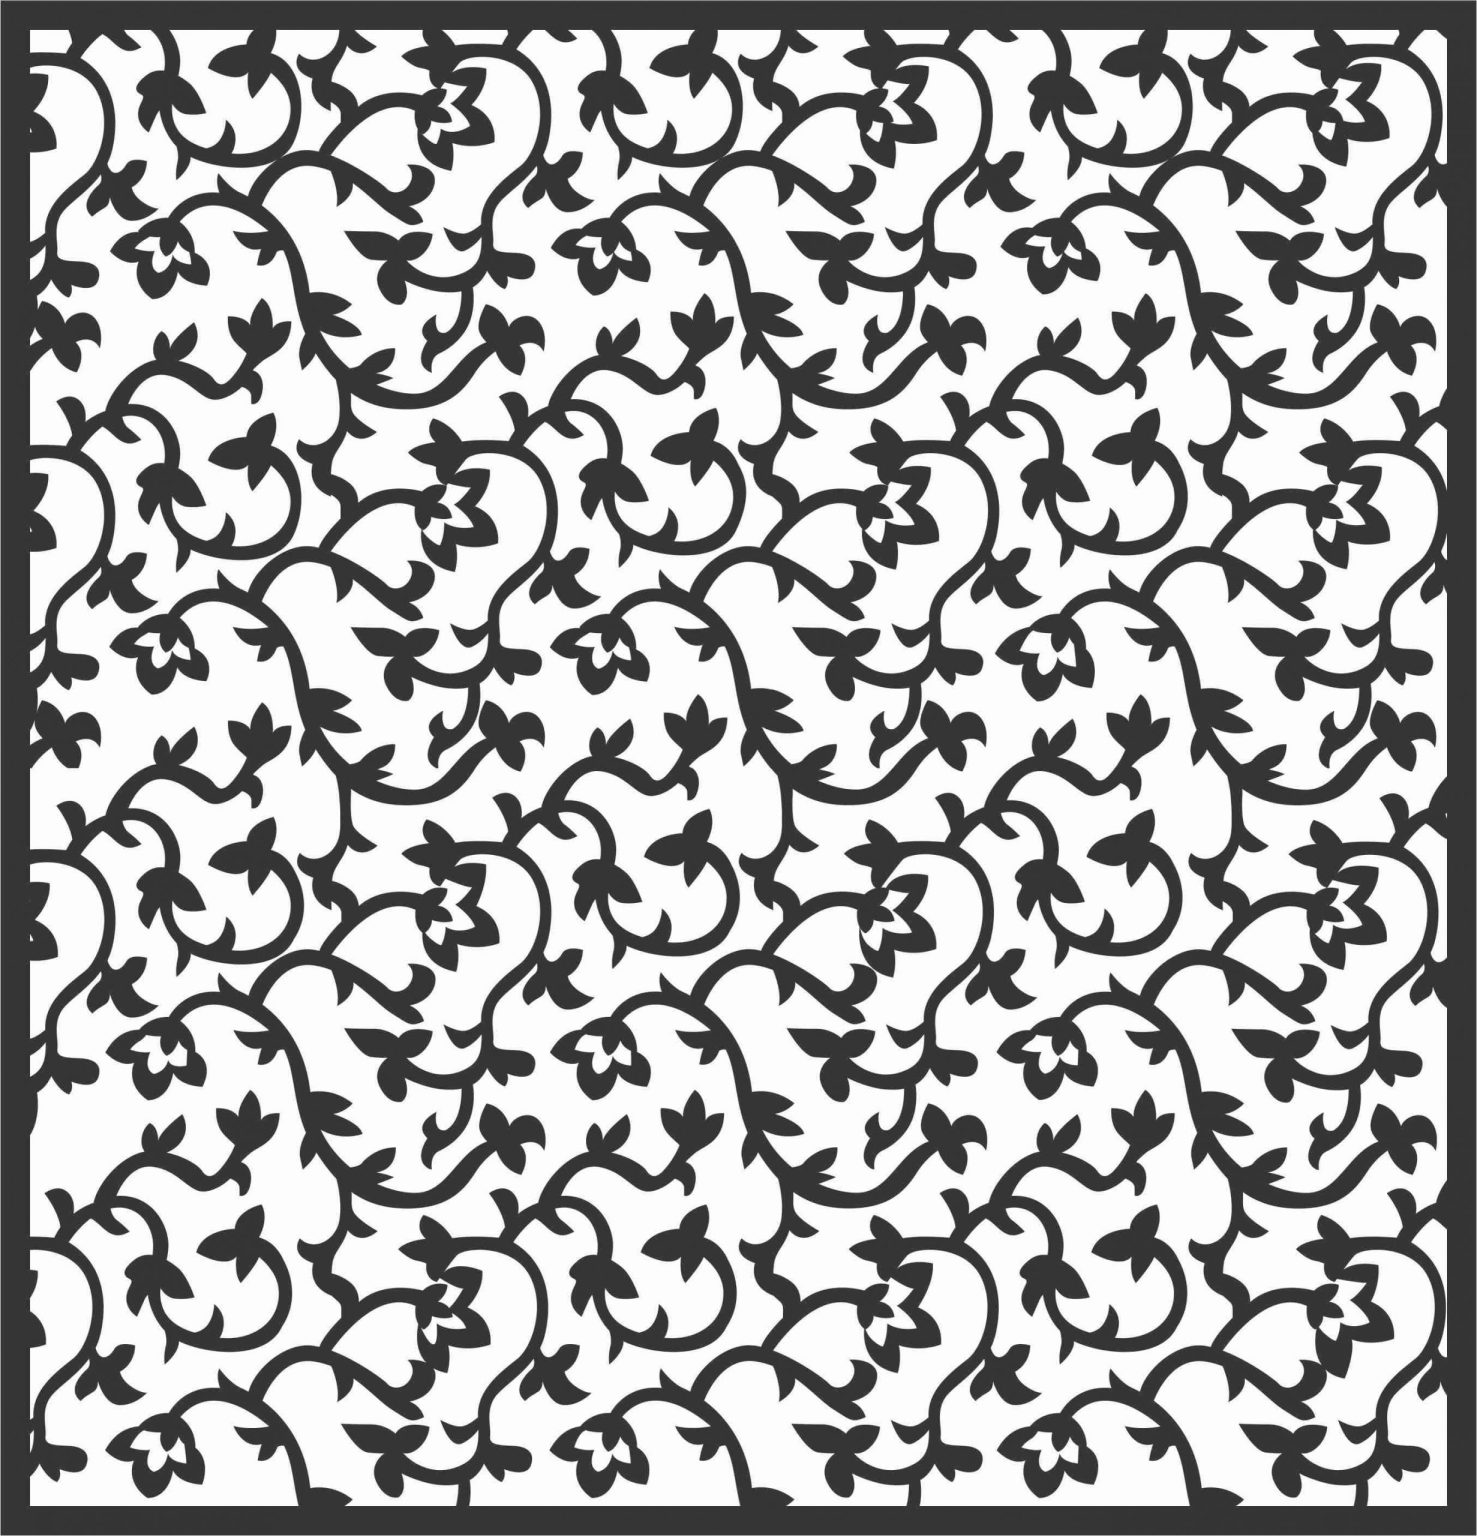 Decorative Screen Patterns For Laser Cutting 173 Free DXF File